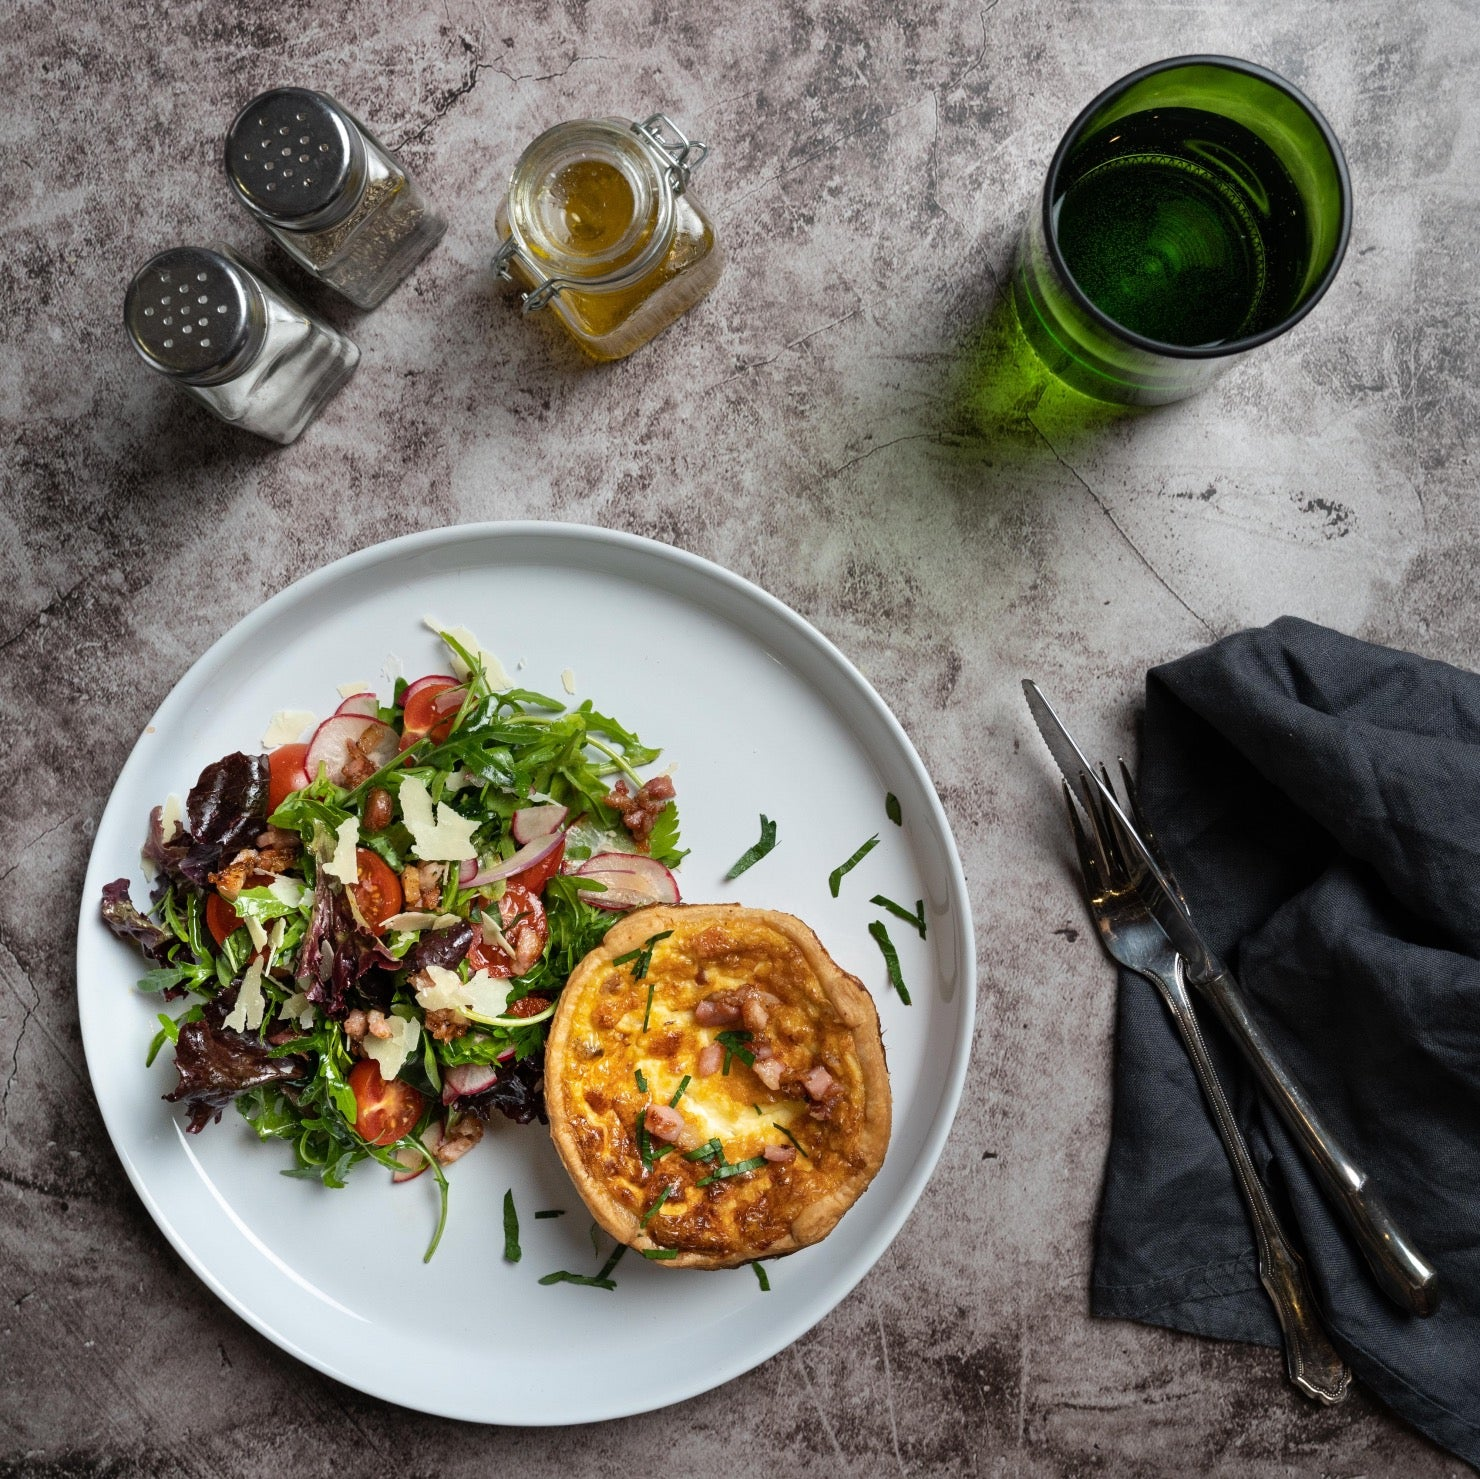 Quiche Lorraine on a plate with a glass of water